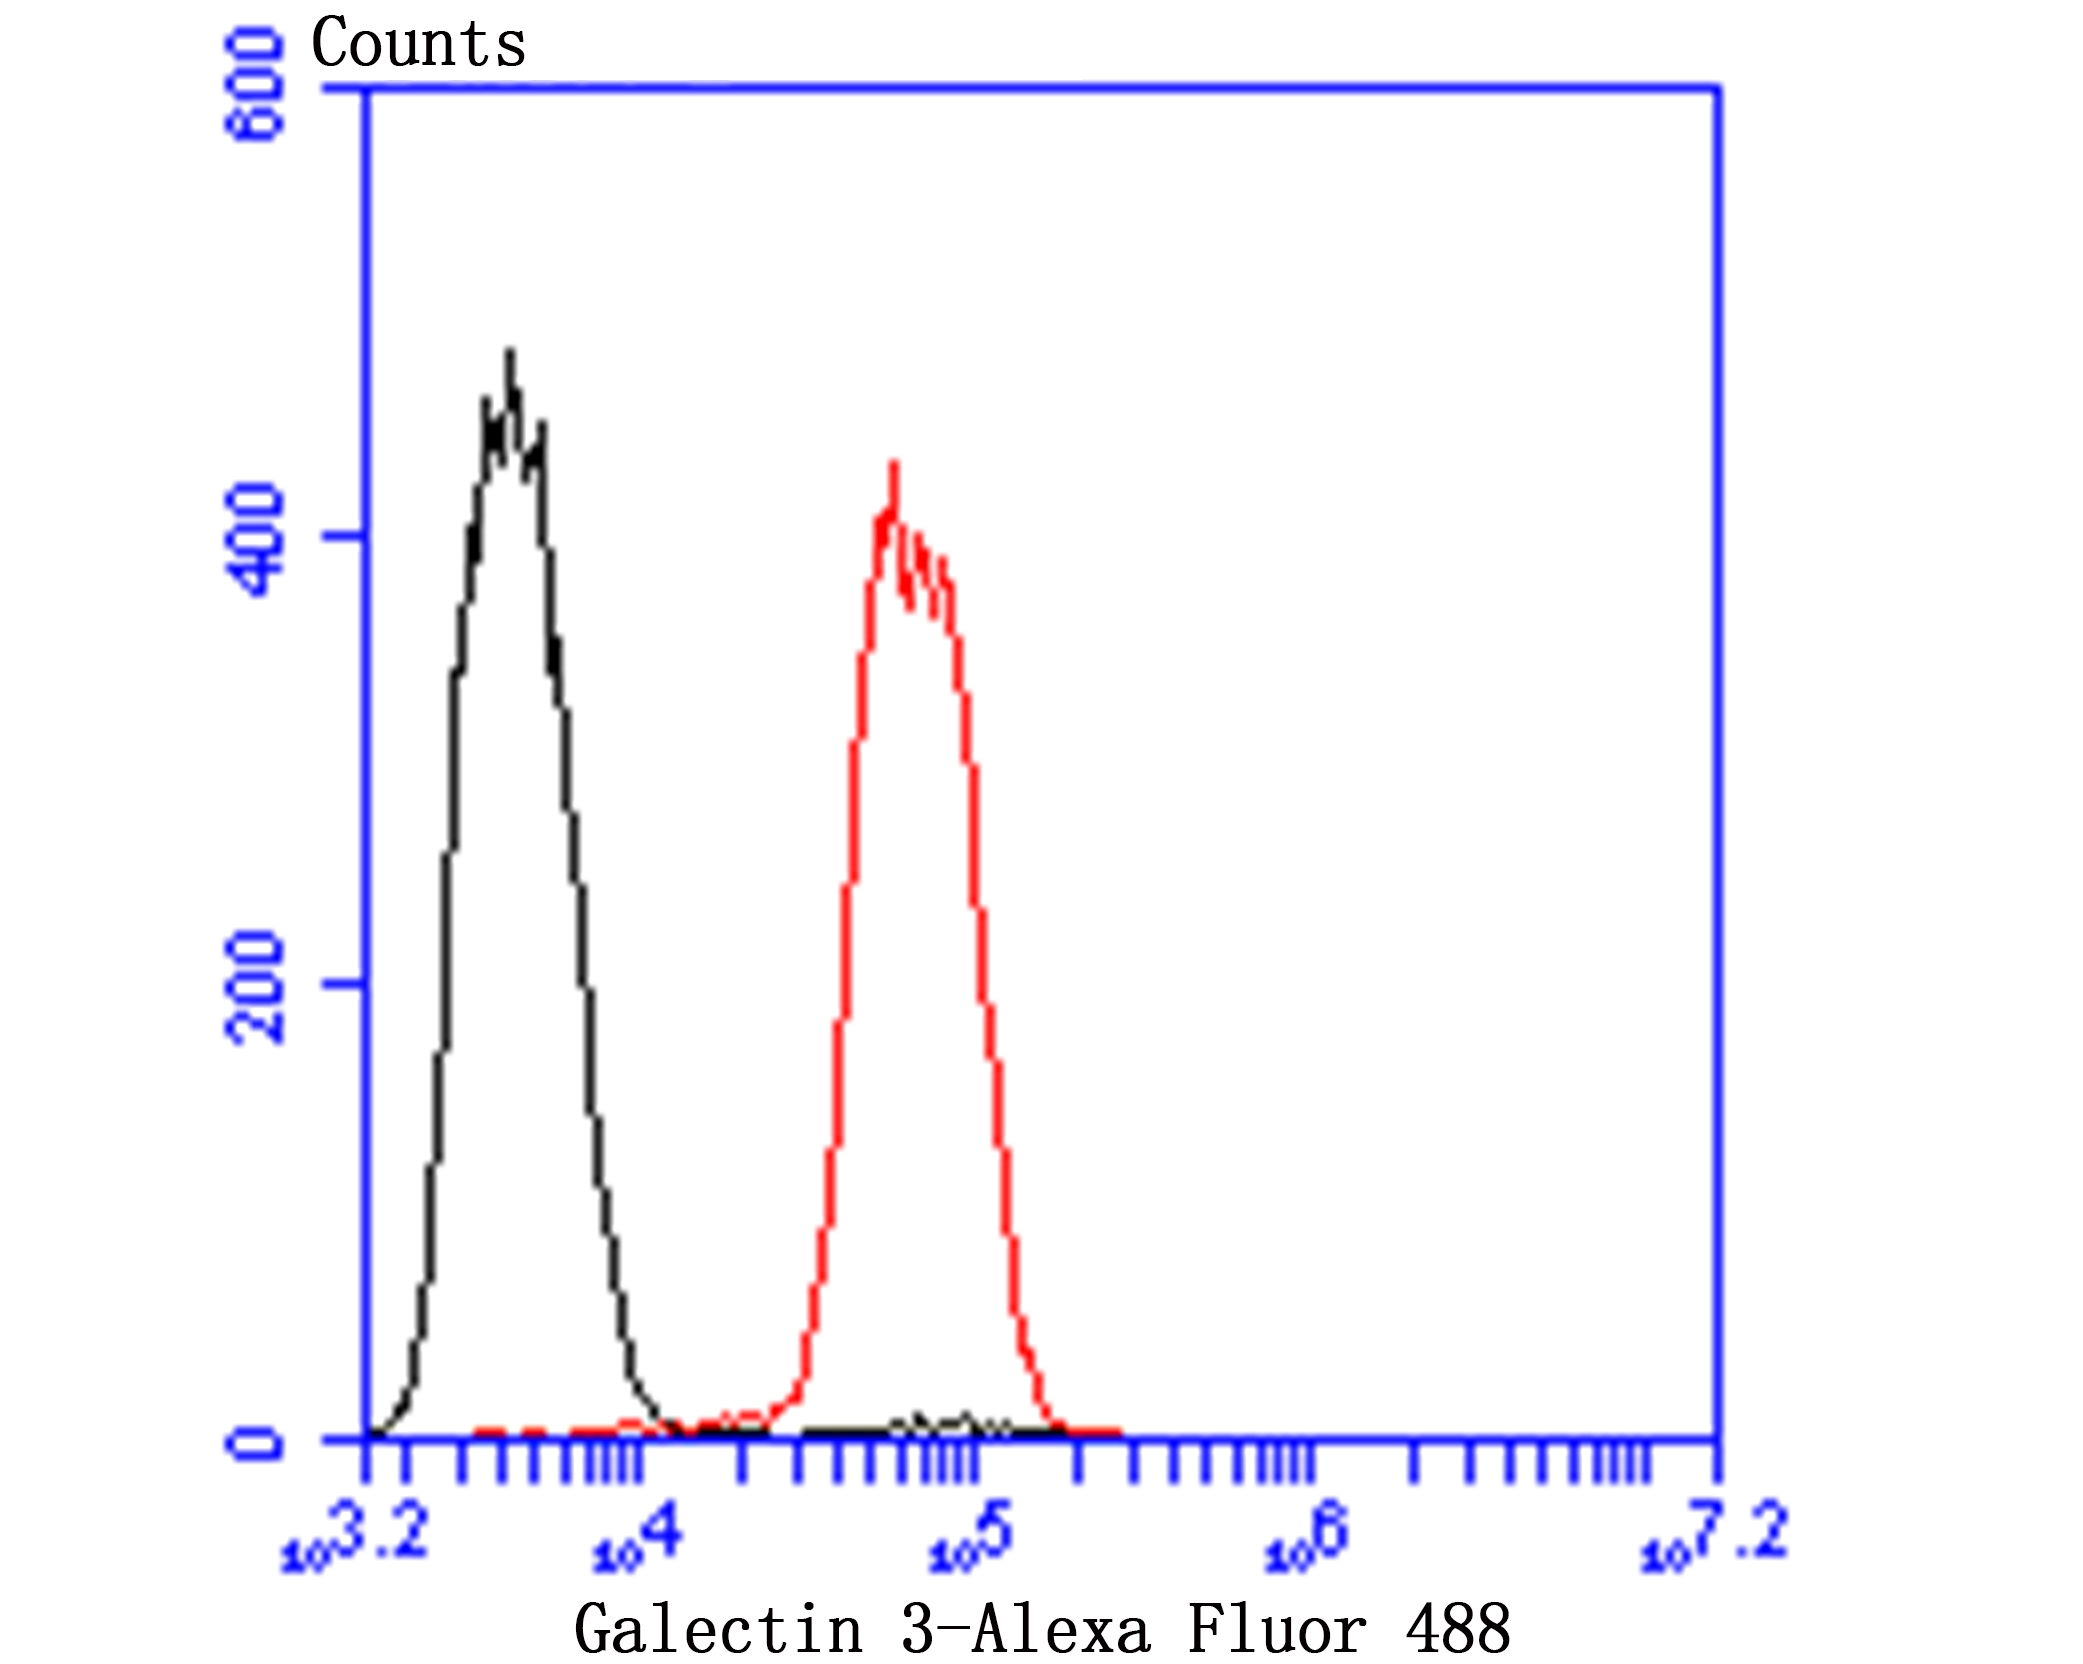 Flow cytometric analysis of Galectin 3 was done on SiHa cells. The cells were fixed, permeabilized and stained with Galectin 3 antibody at 1/100 dilution (red) compared with an unlabelled control (cells without incubation with primary antibody; black). After incubation of the primary antibody on room temperature for an hour, the cells was stained with a Alexa Fluor™ 488-conjugated goat anti-rabbit IgG Secondary antibody at 1/500 dilution for 30 minutes.